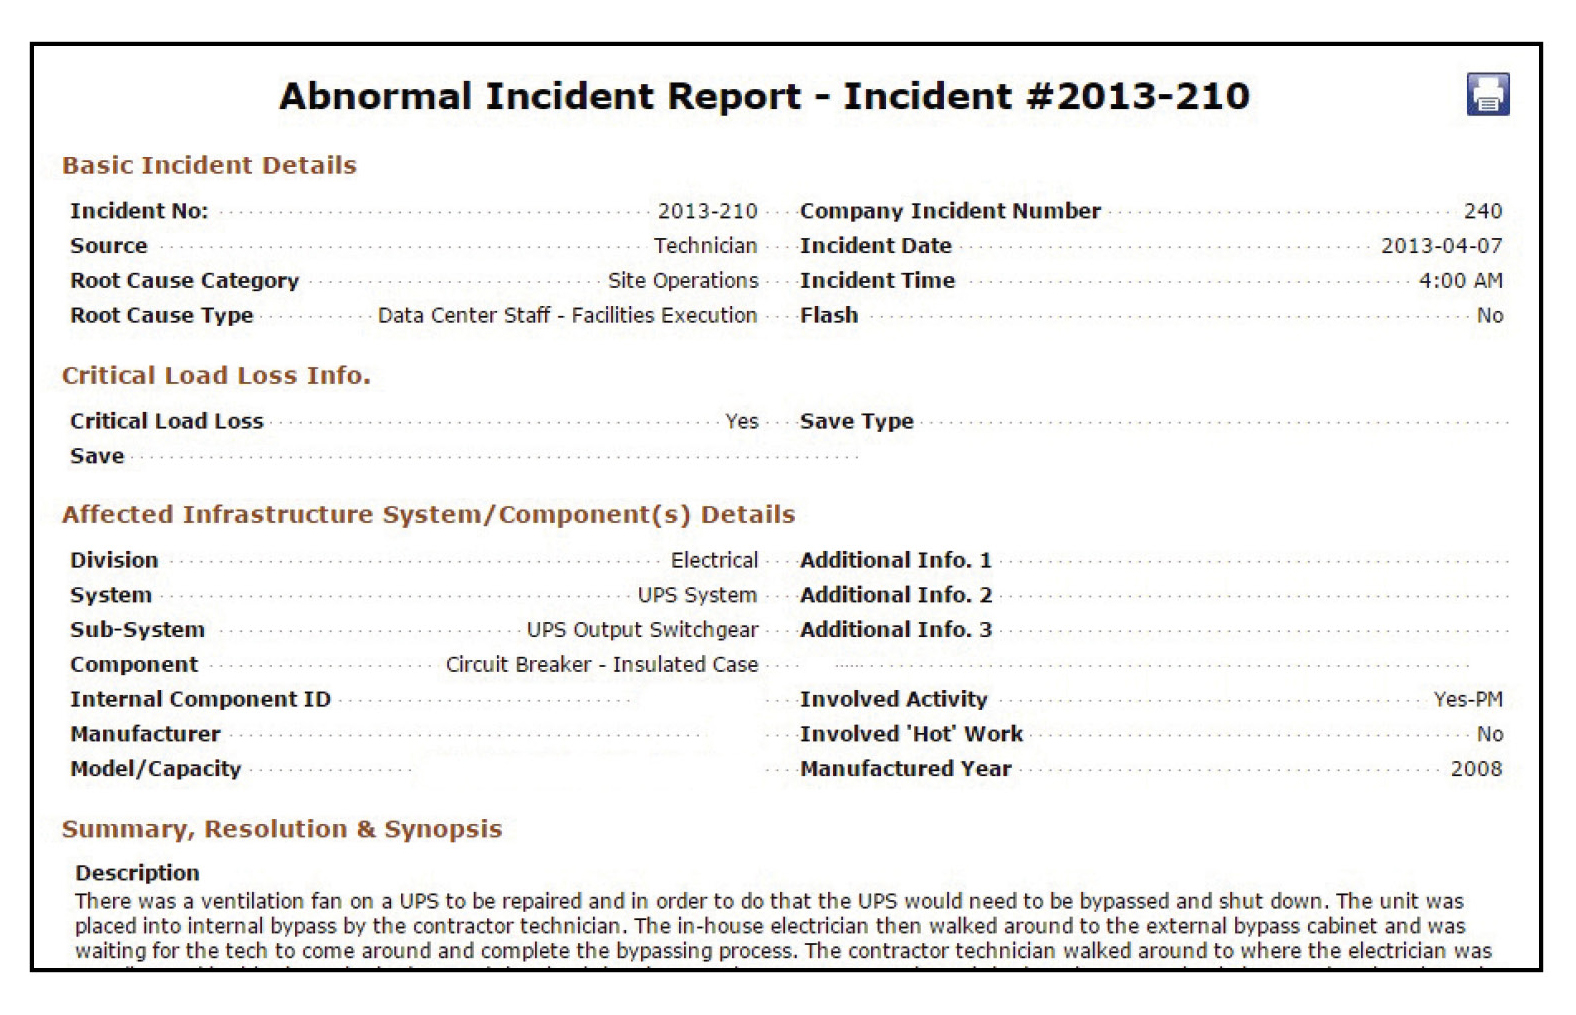 Figure 4. The overview page of the abnormal incident report selected for detailed analysis.